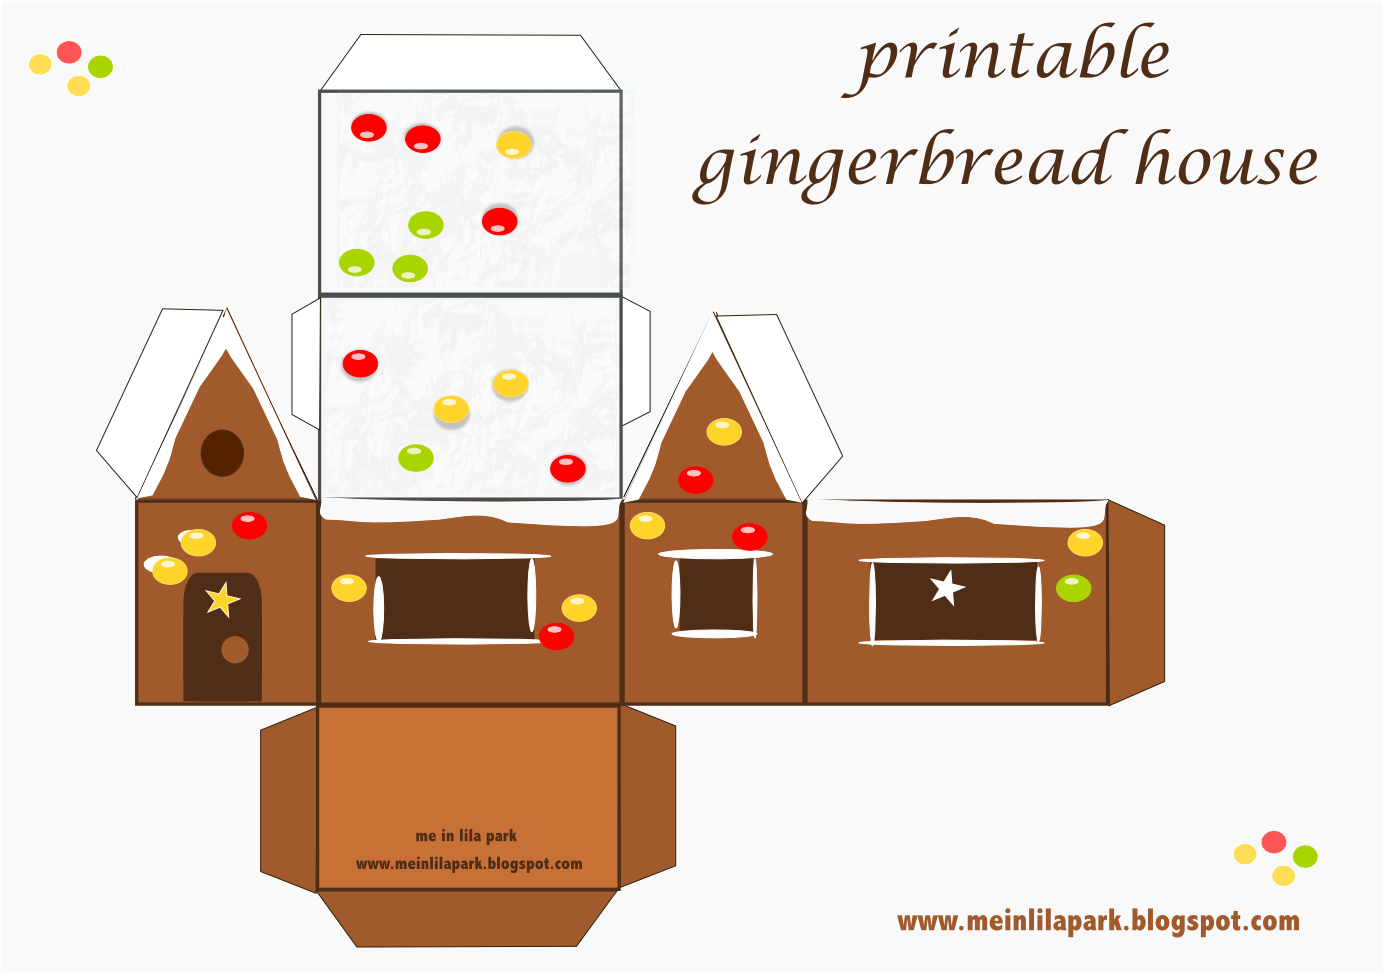 It's just a picture of Ambitious Gingerbread House Templates Printable